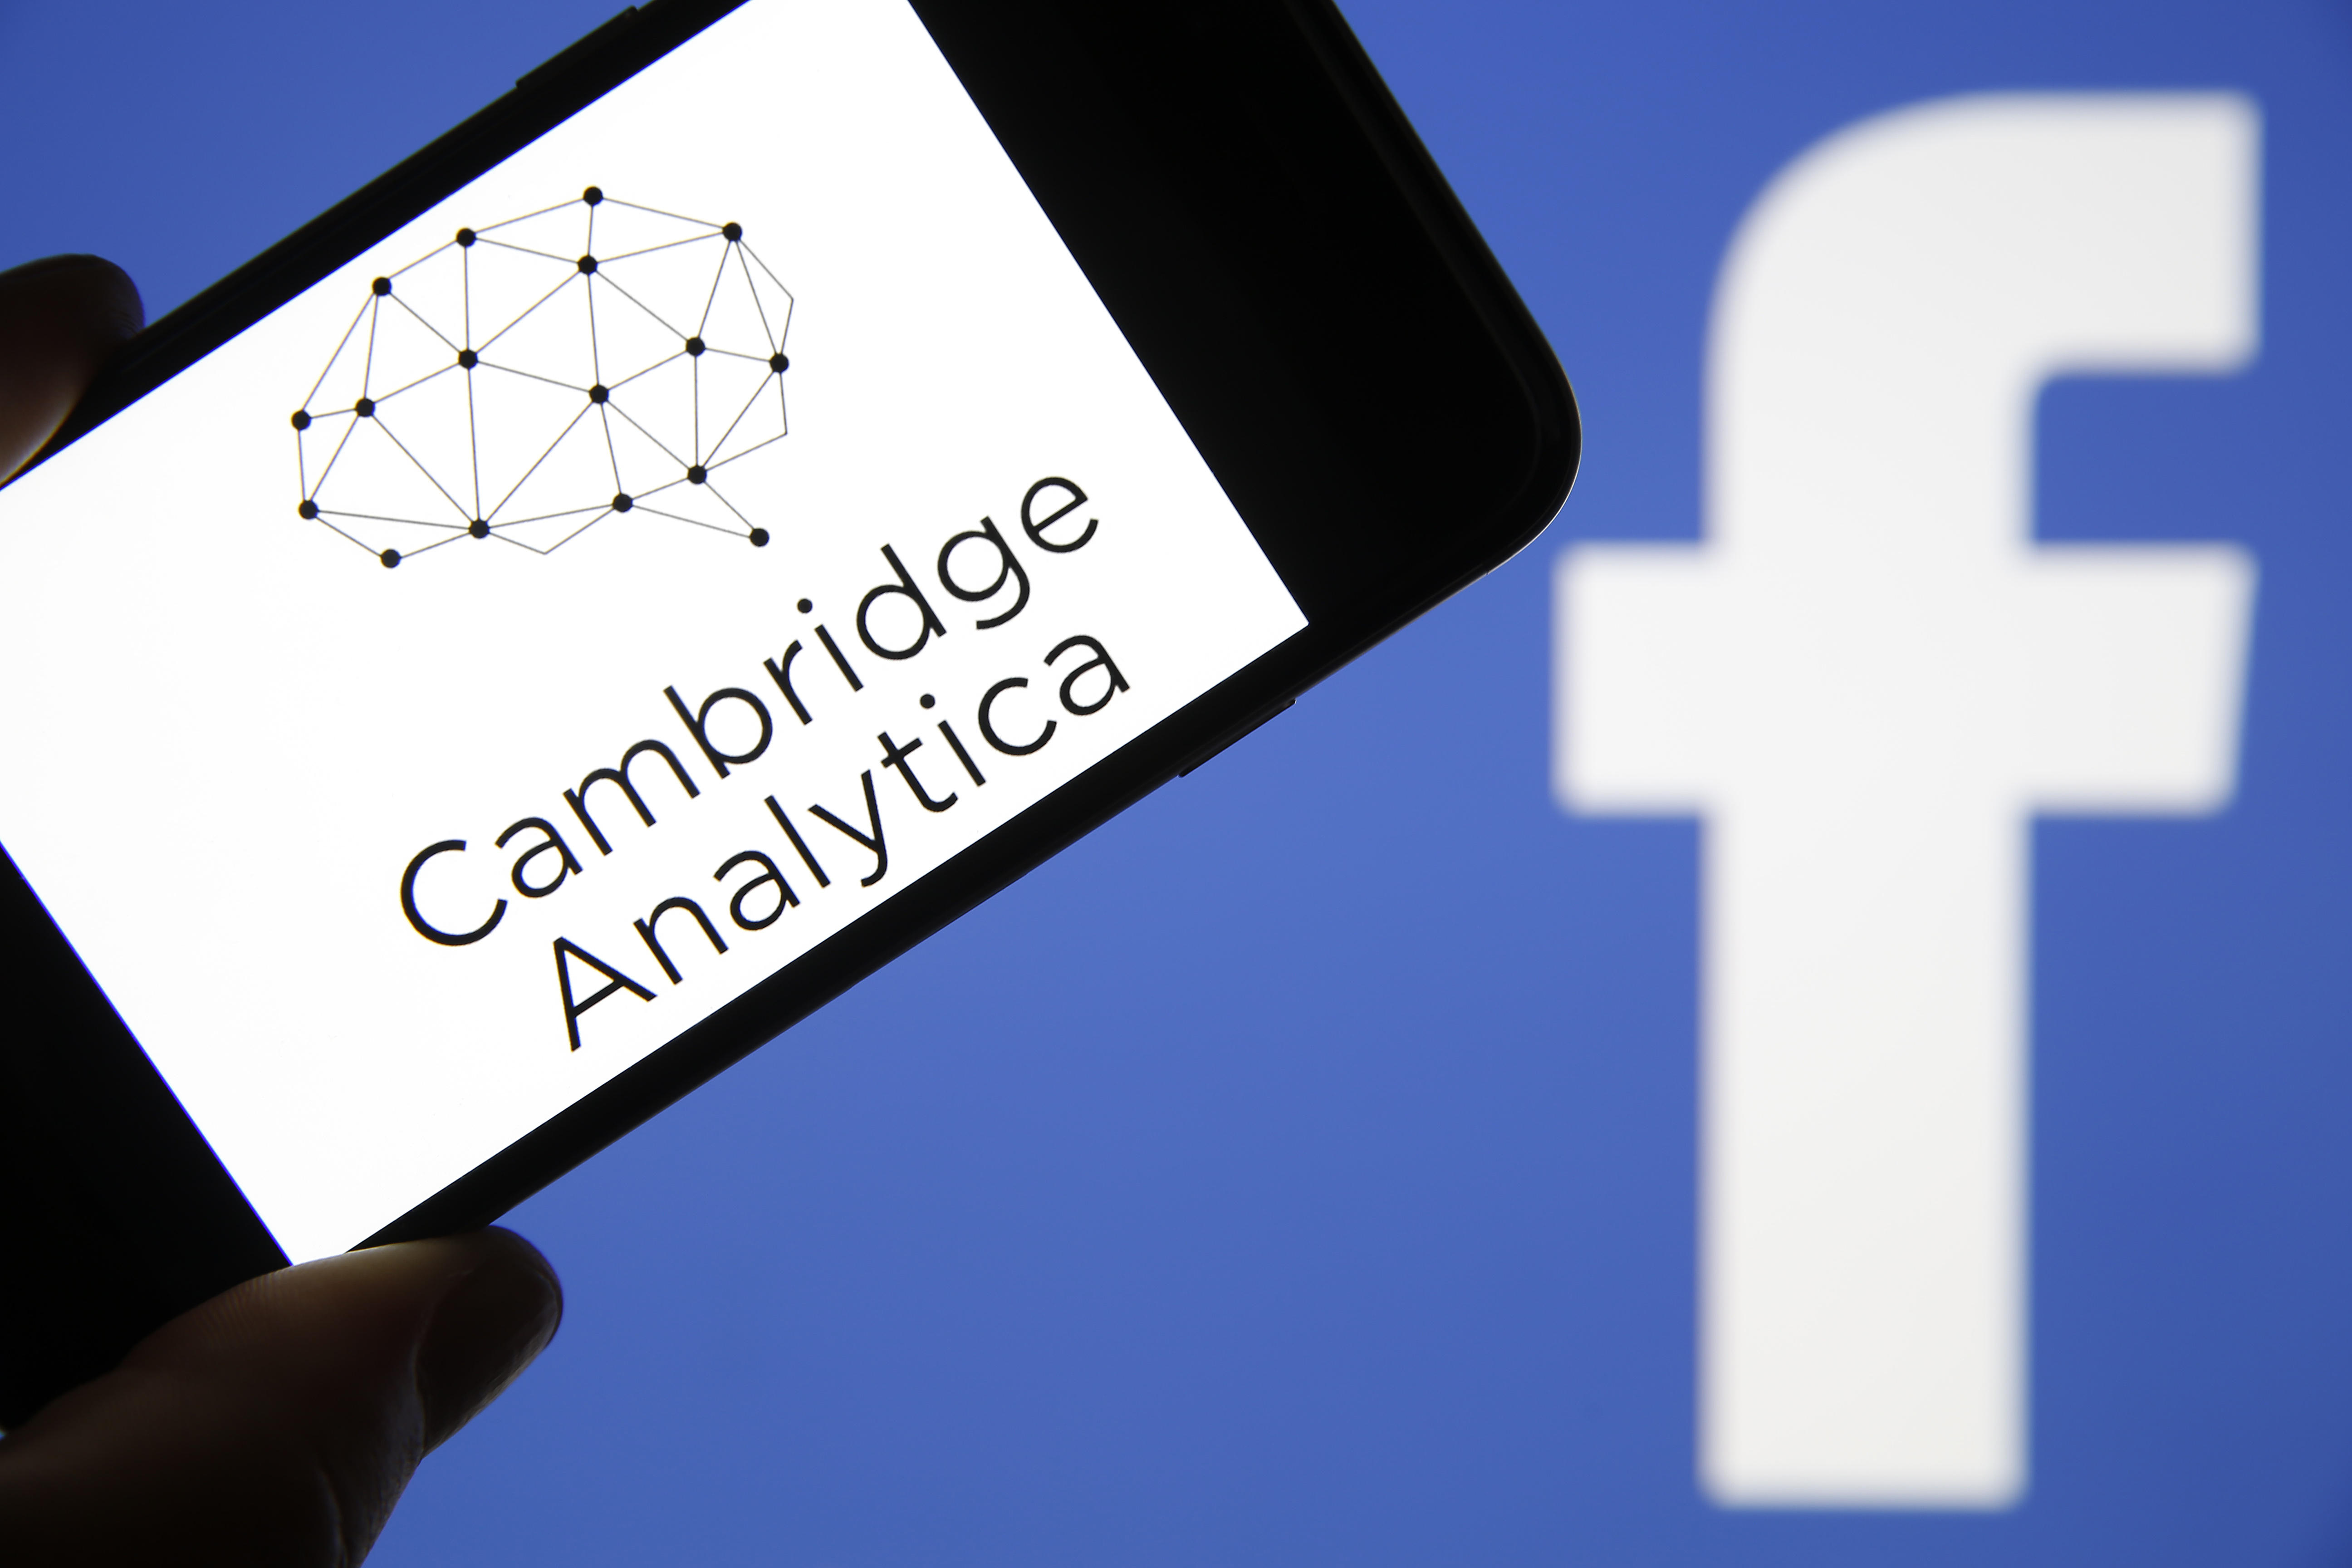 Cambridge Analytica name and logo on a smartphone screen, in front of the Facebook logo.